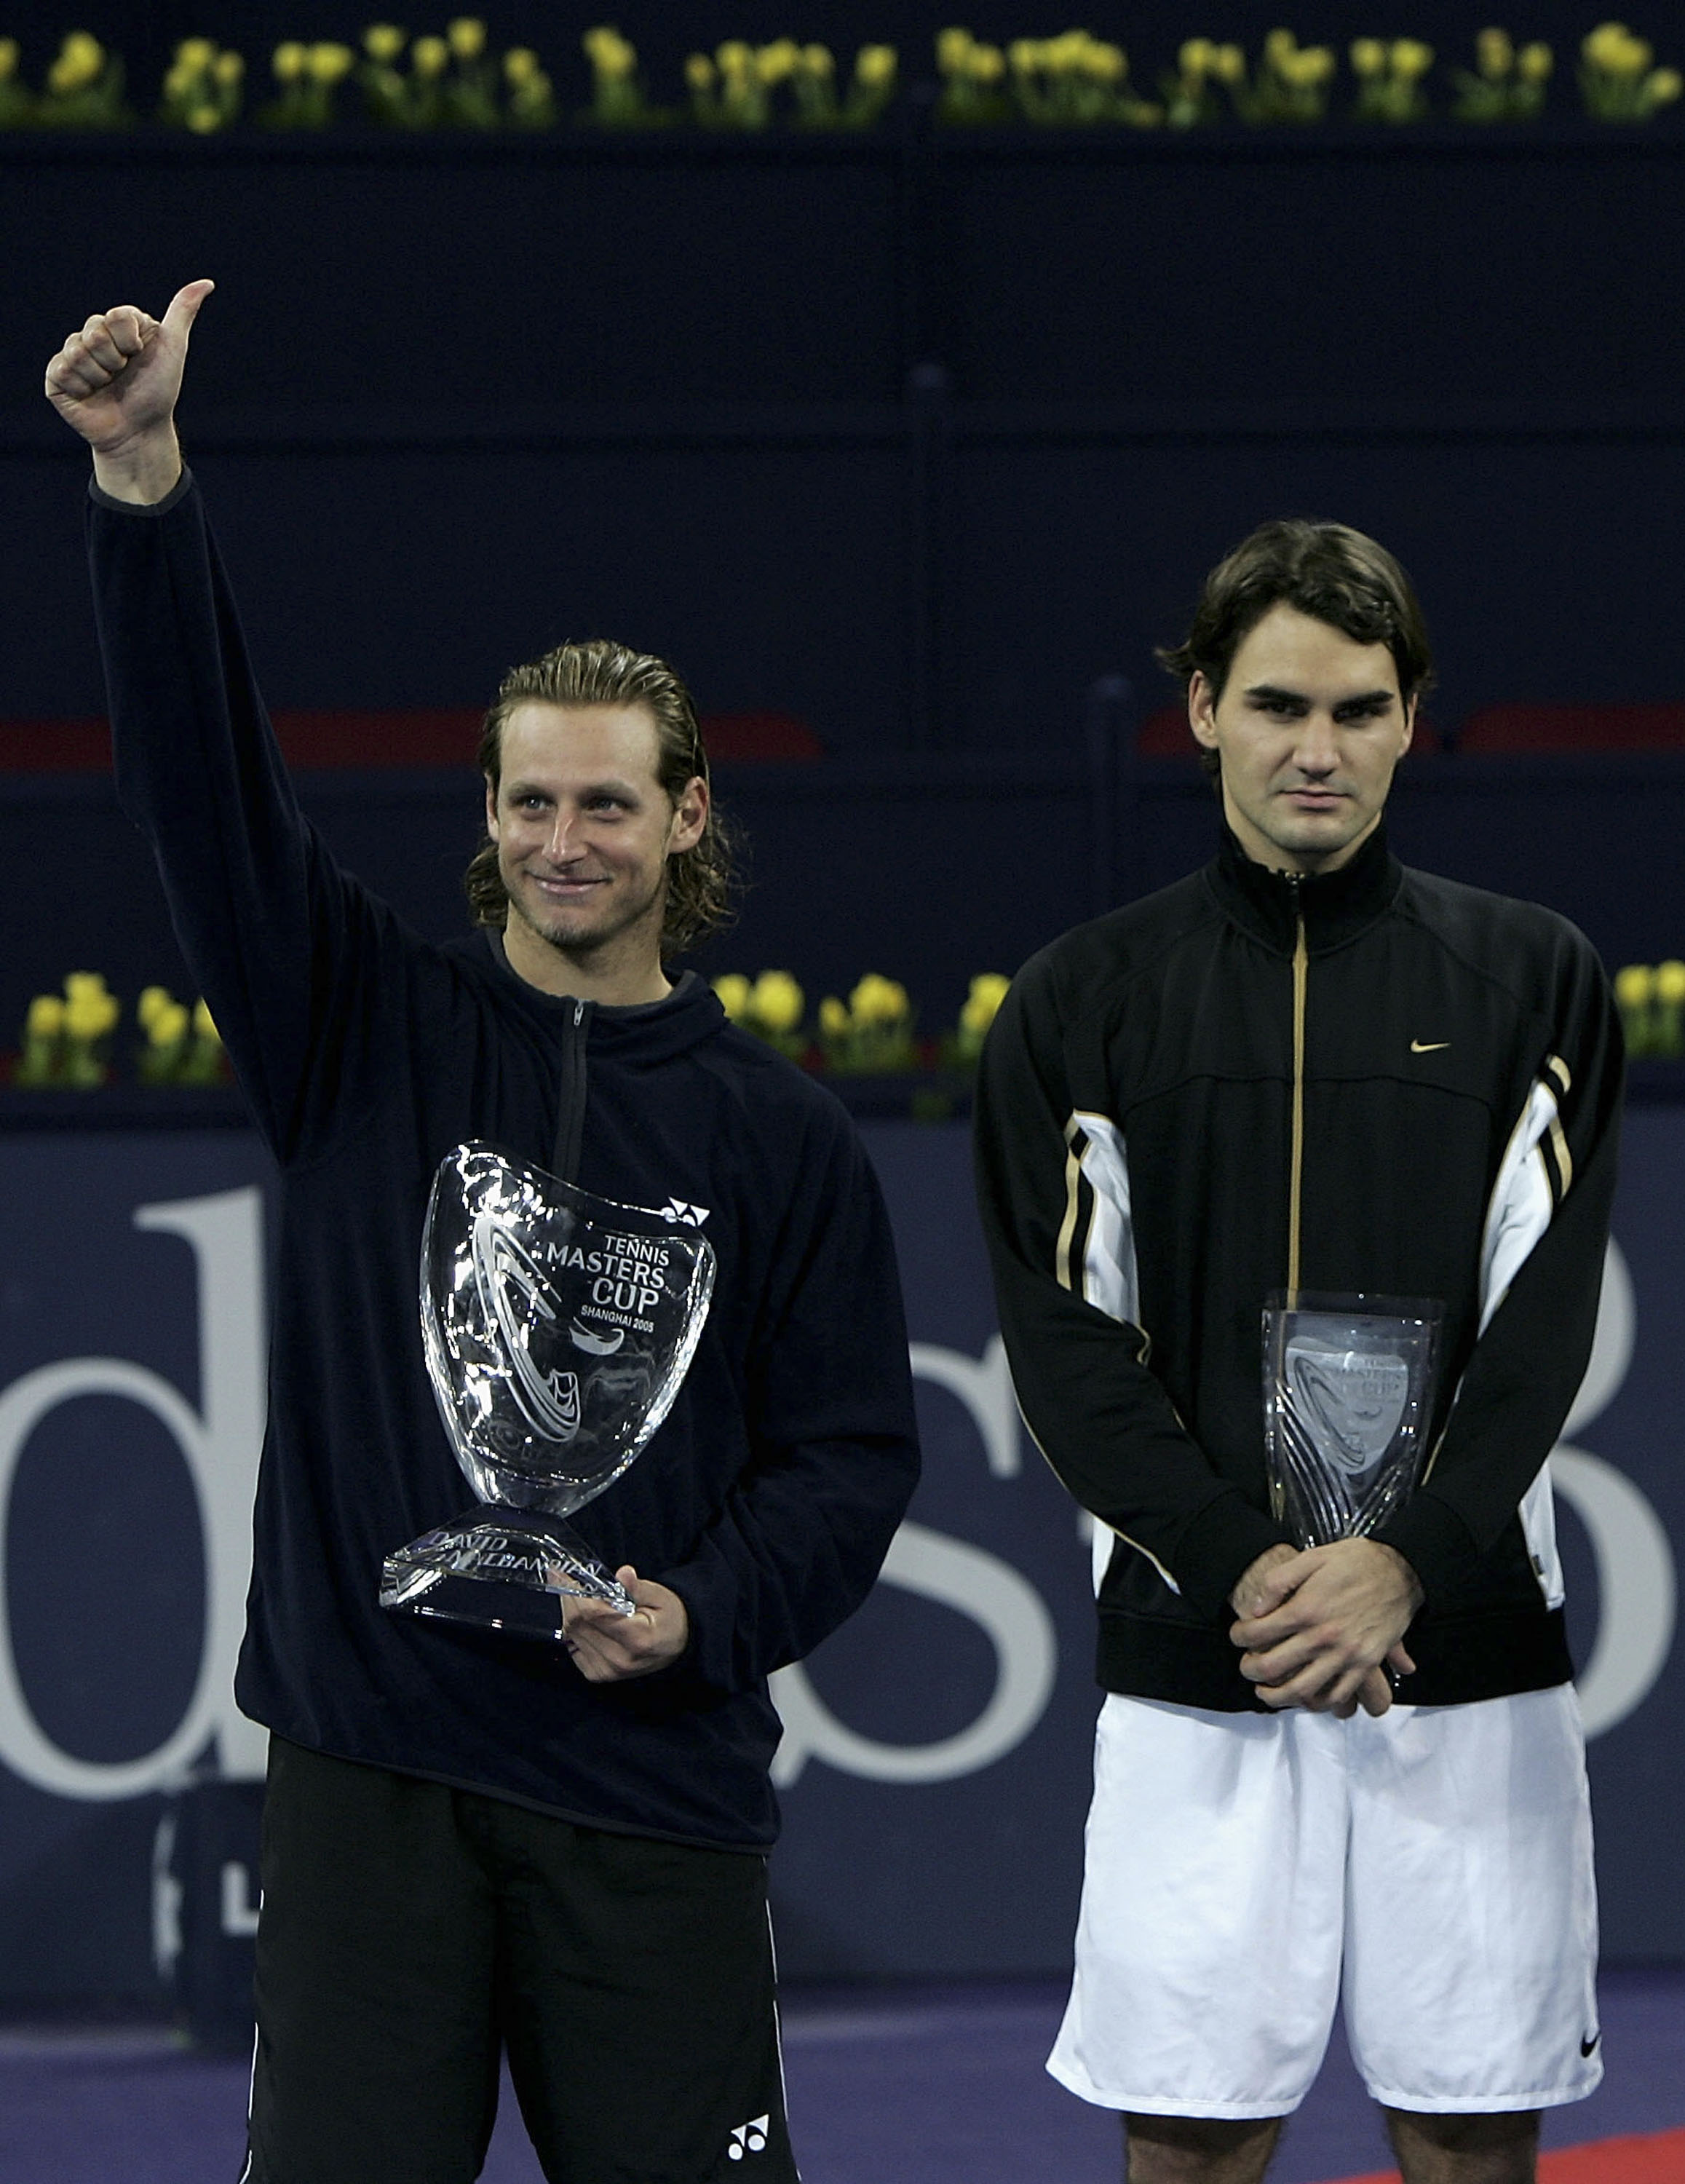 Nalbandian holds the trophy after his five set victory over Federer as the Swiss looks on.